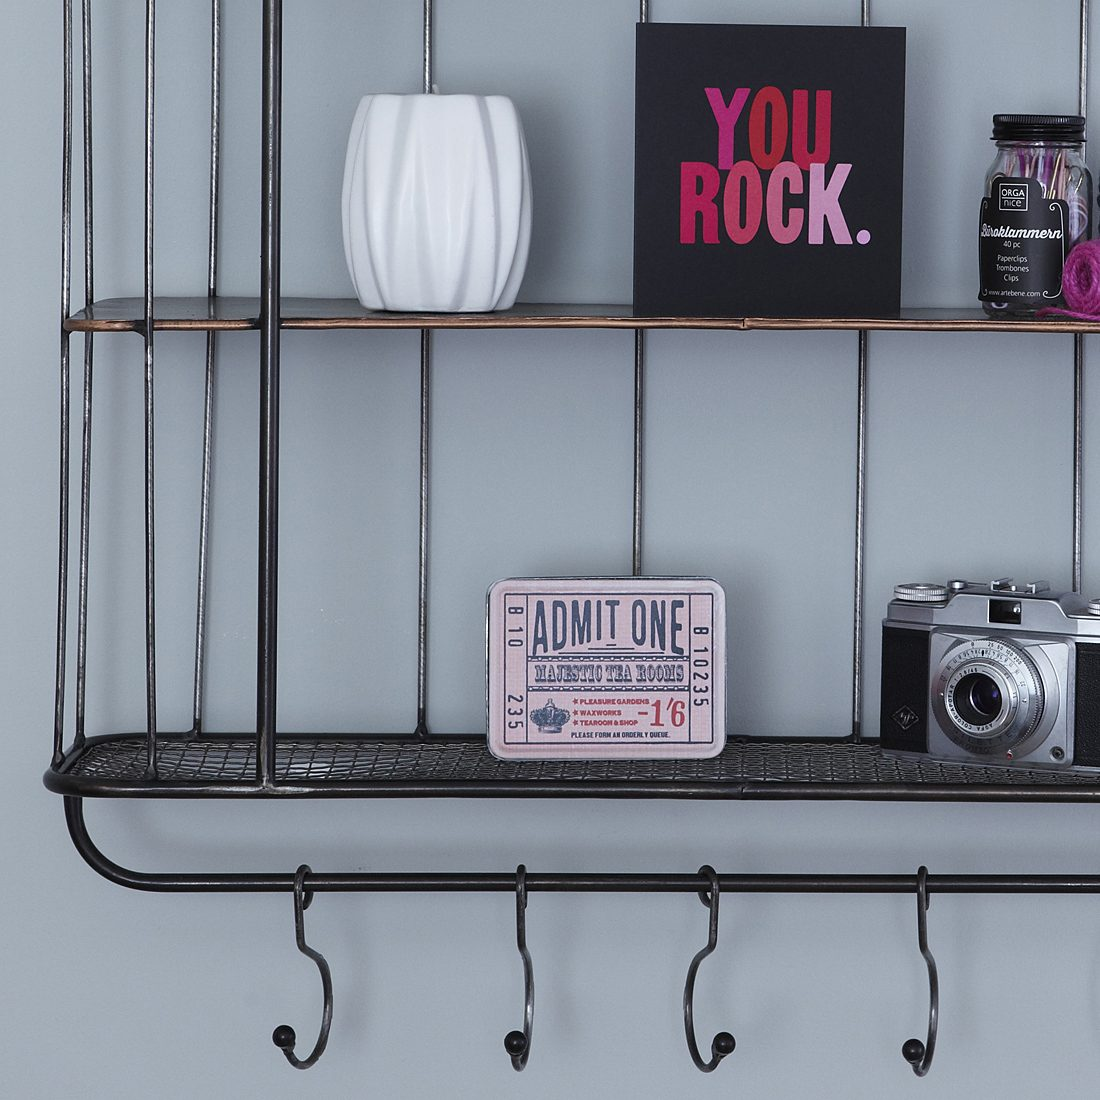 ThreeShelf Industrial Shelf Unit with Hanging Hooks